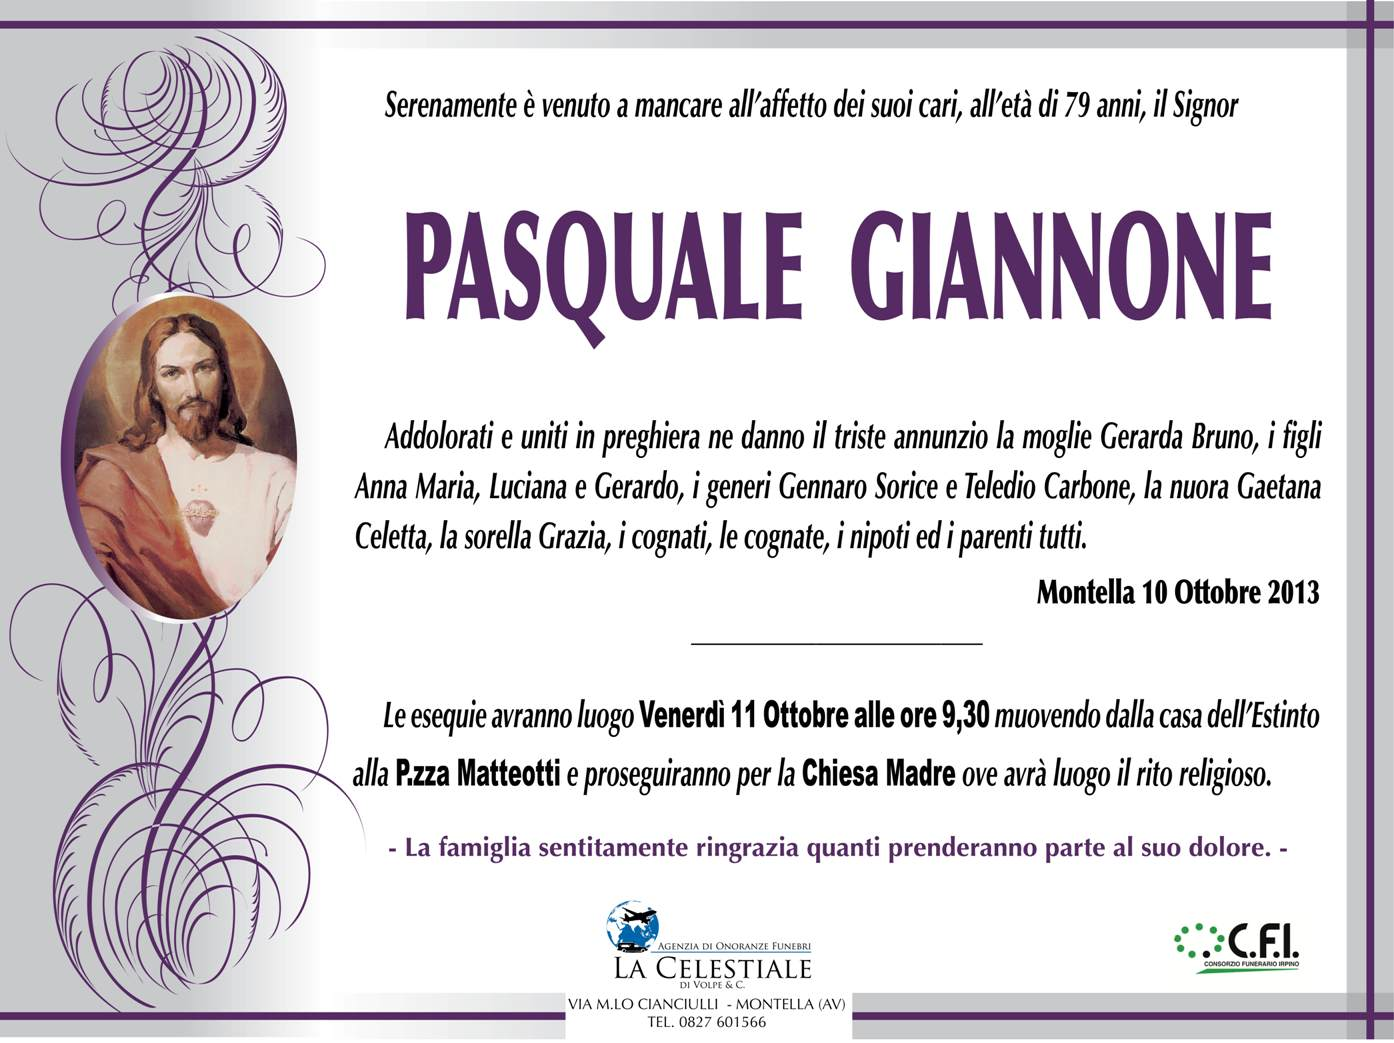 1-10-13-Giannone Pasquale